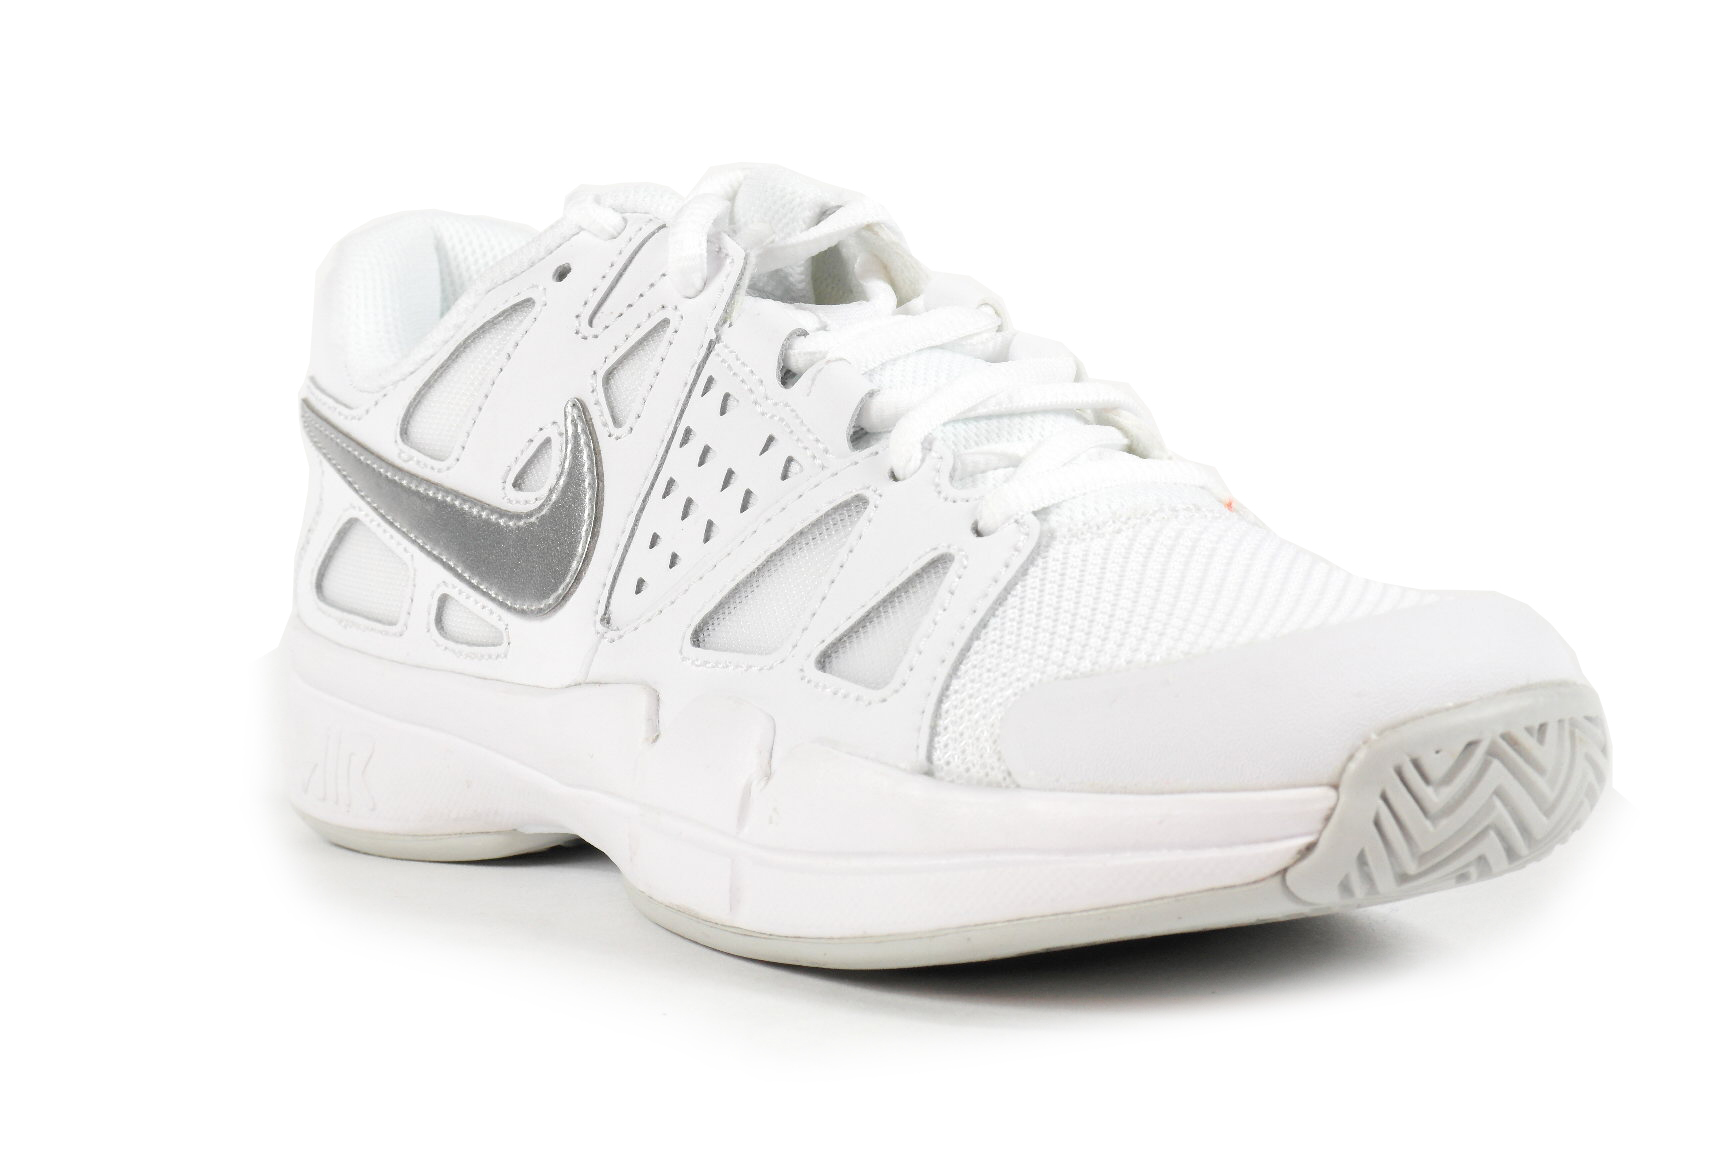 aba6ca467c5 Nike Air vapor advantage dames tennisschoenen wit Nike Air vapor advantage  dames tennisschoenen wit ...